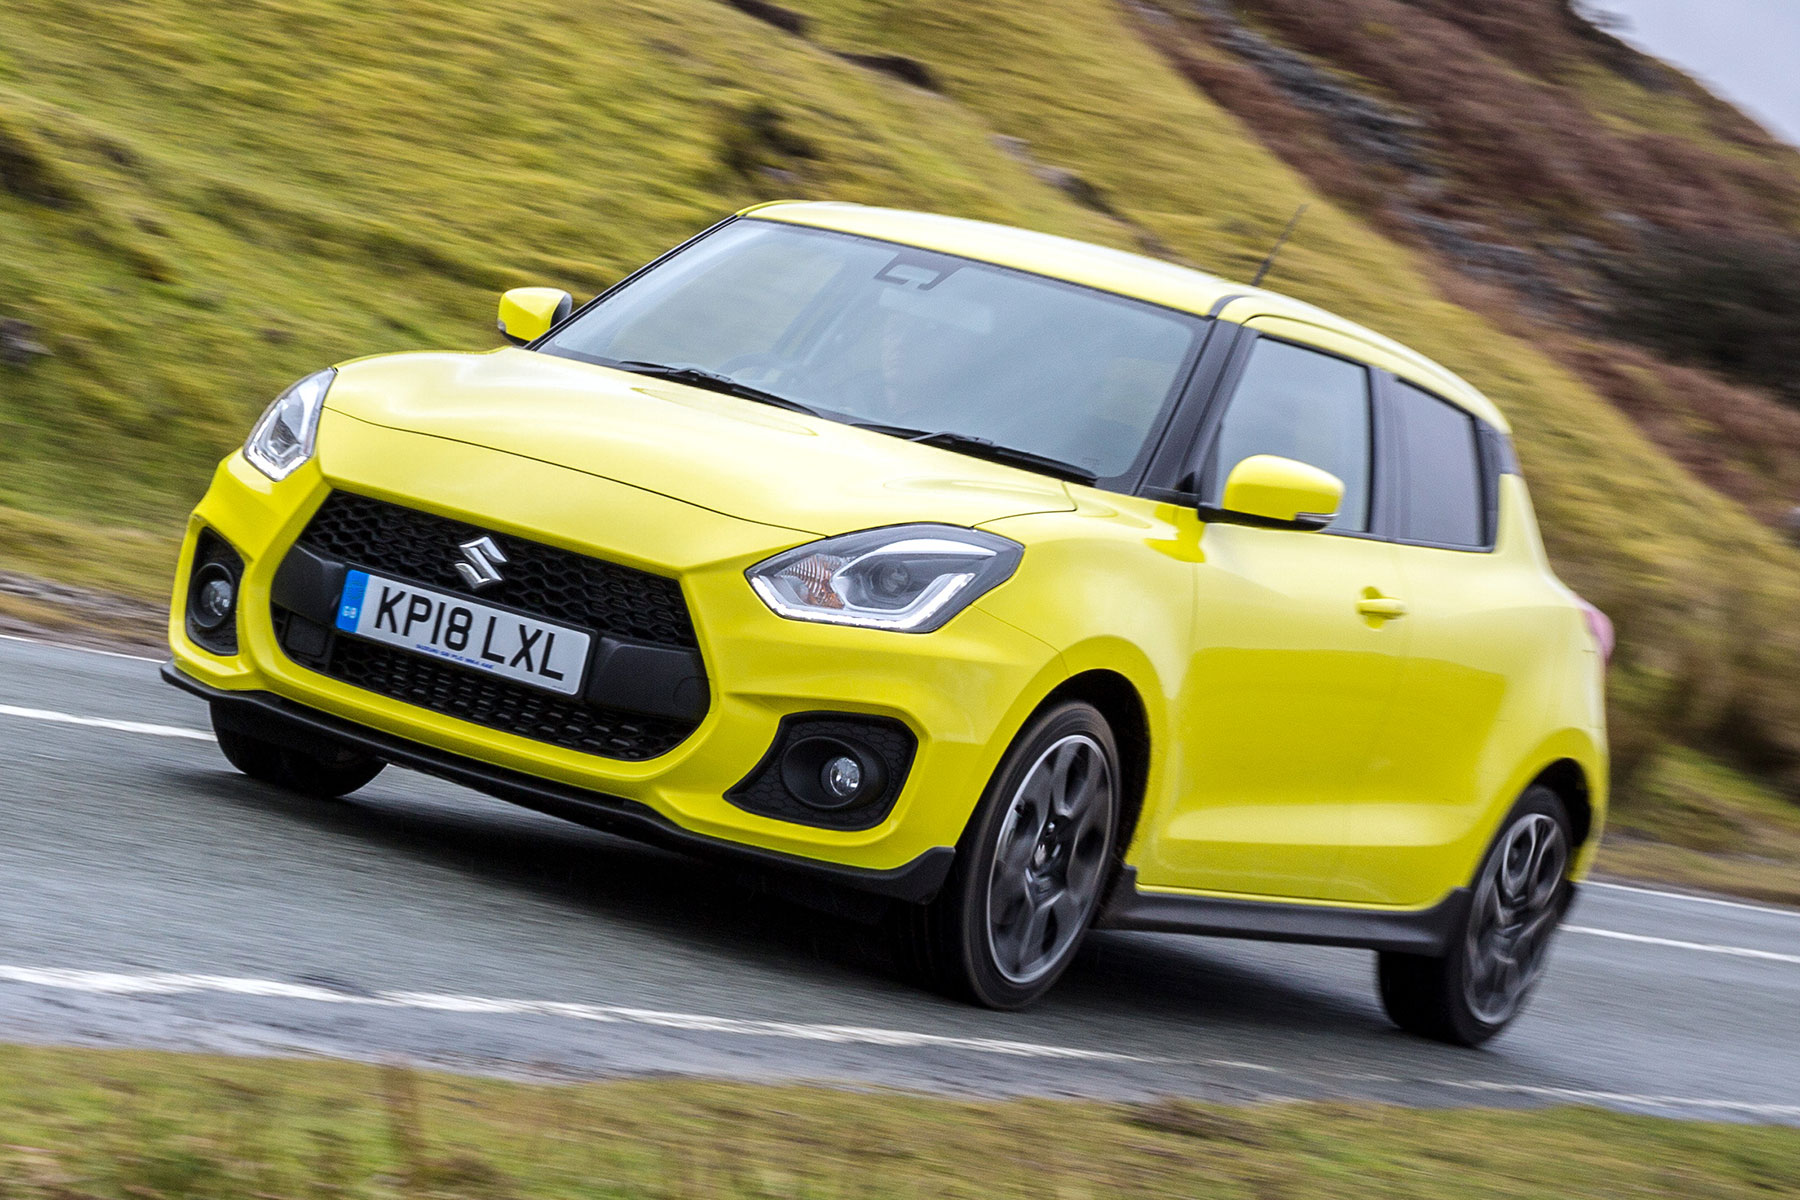 2018 suzuki swift sport first drive punchy hot hatch lacks fizz. Black Bedroom Furniture Sets. Home Design Ideas